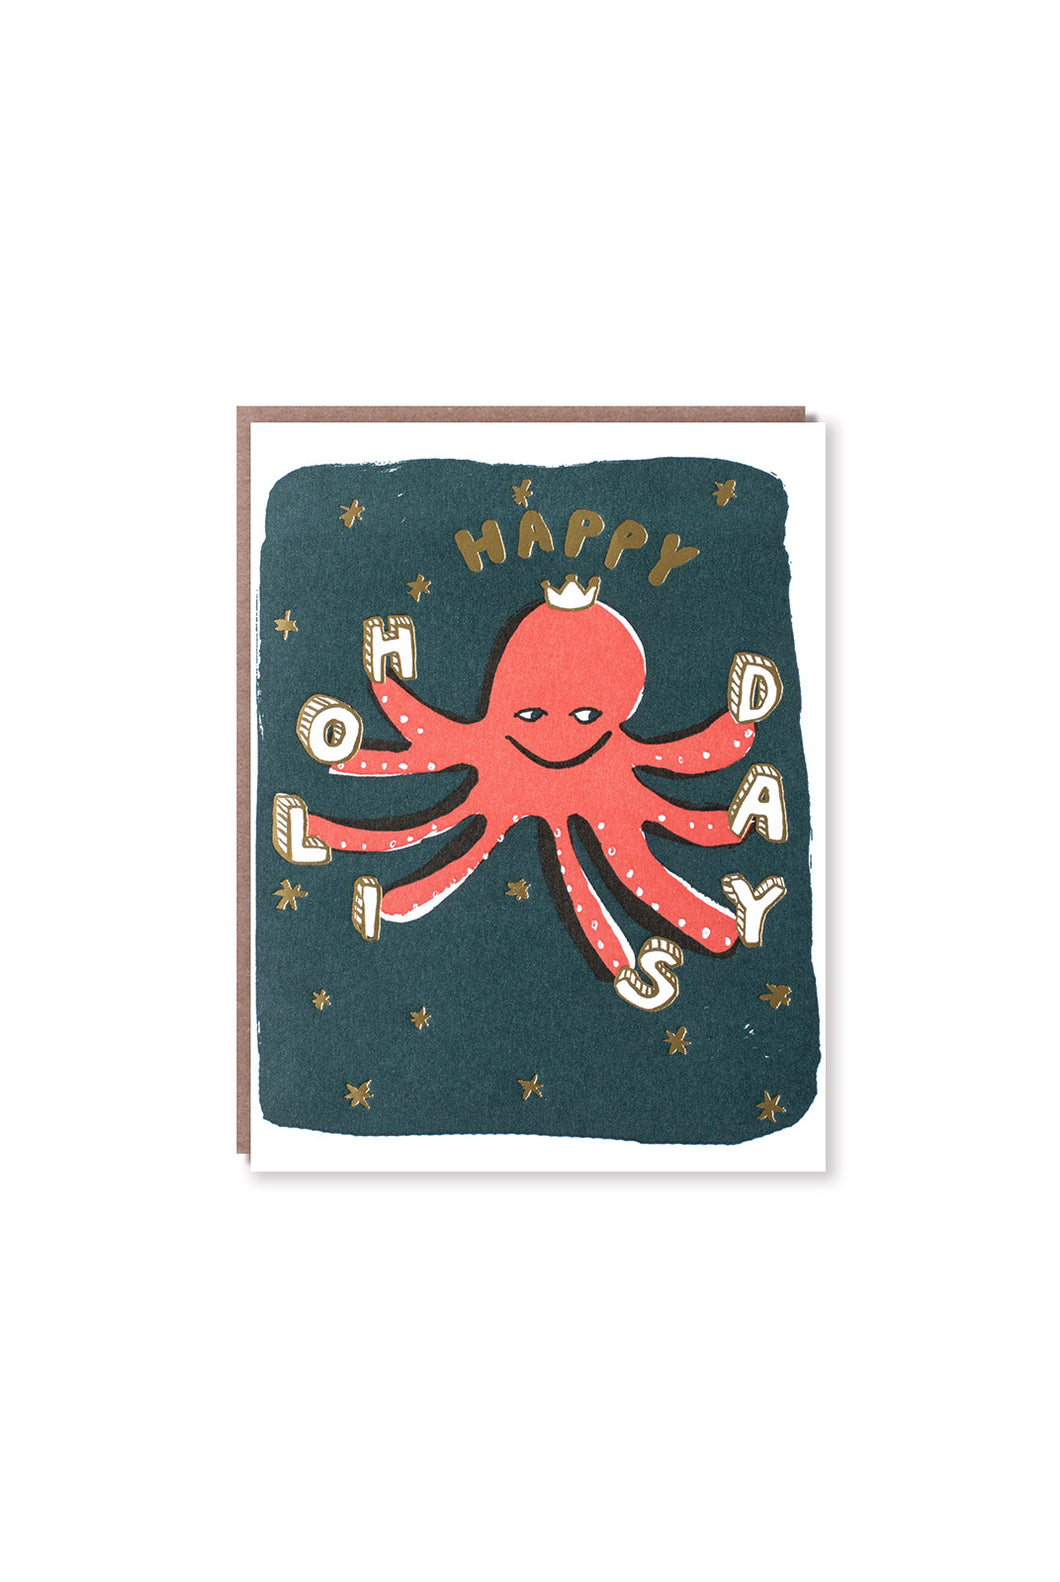 Egg Press - Single Card - Octopus Happy Holidays